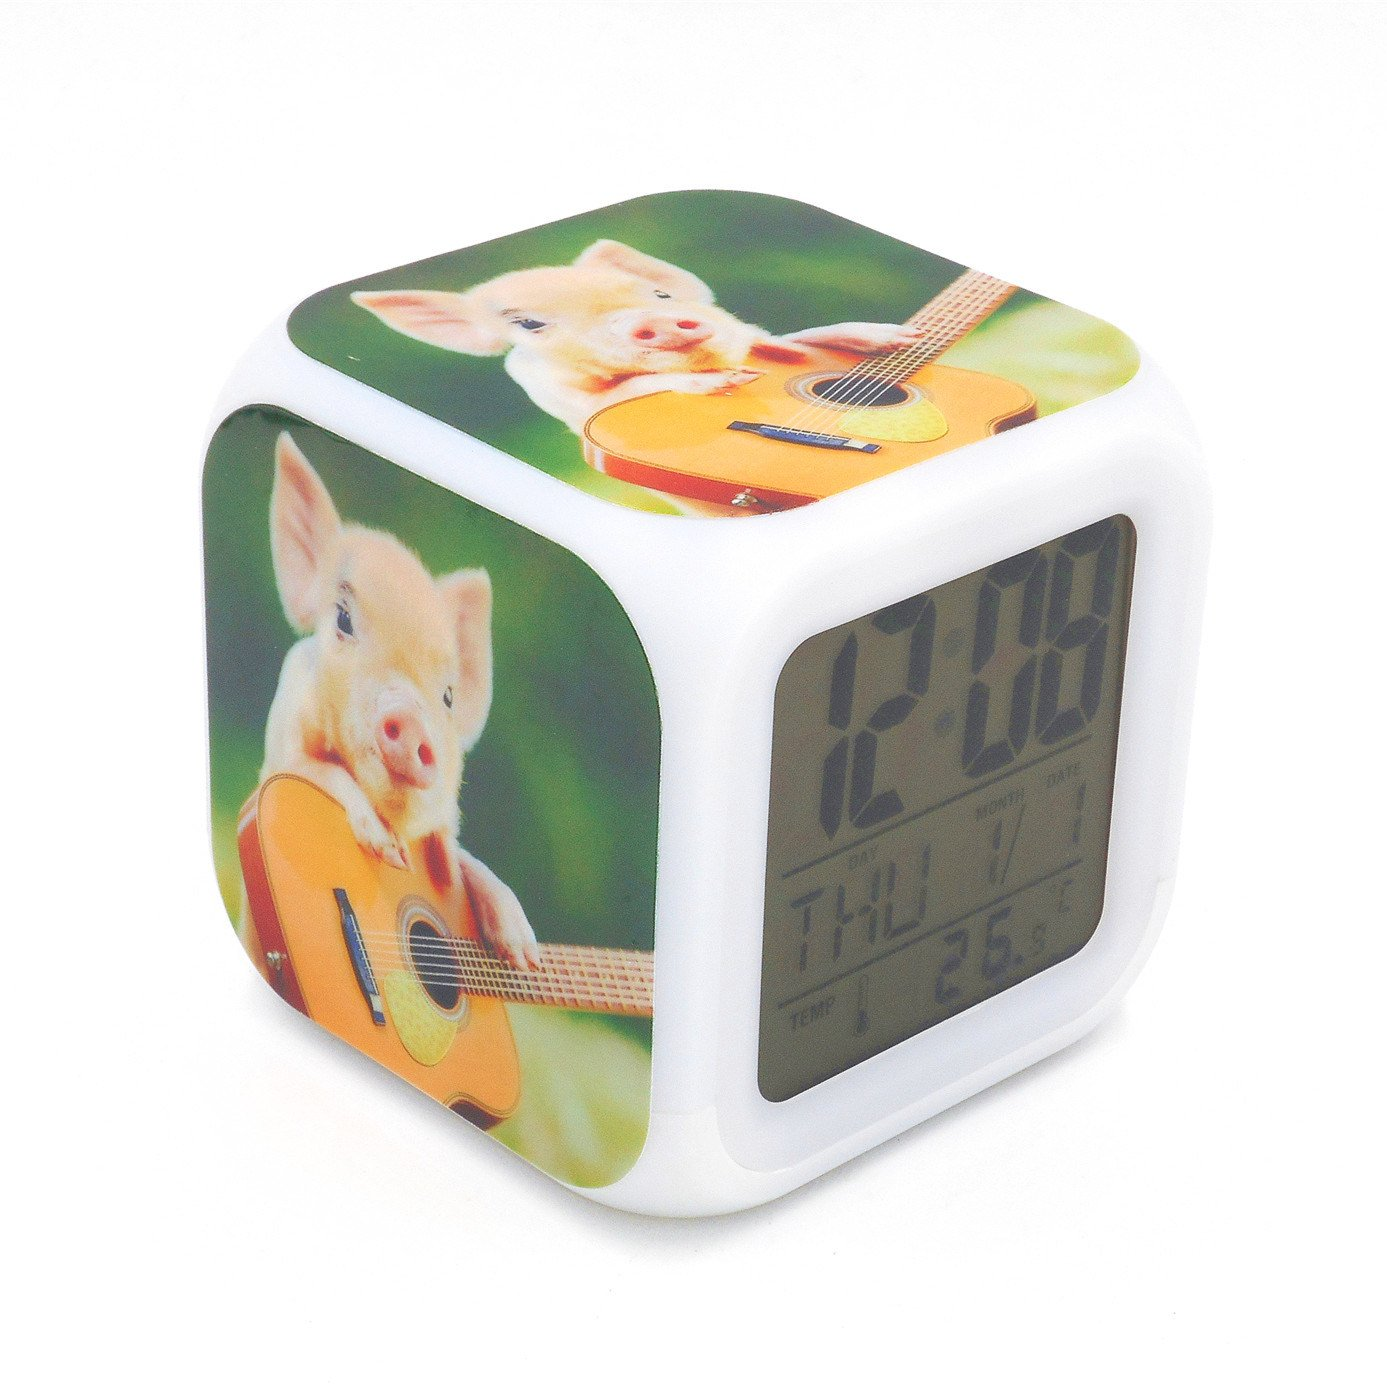 Boyan New Pig Pet Animal Led Alarm Clock Desk Clock Calendar Snooze Glowing Led Digital Alarm Clock Unisex Adults Kids Toy Gift